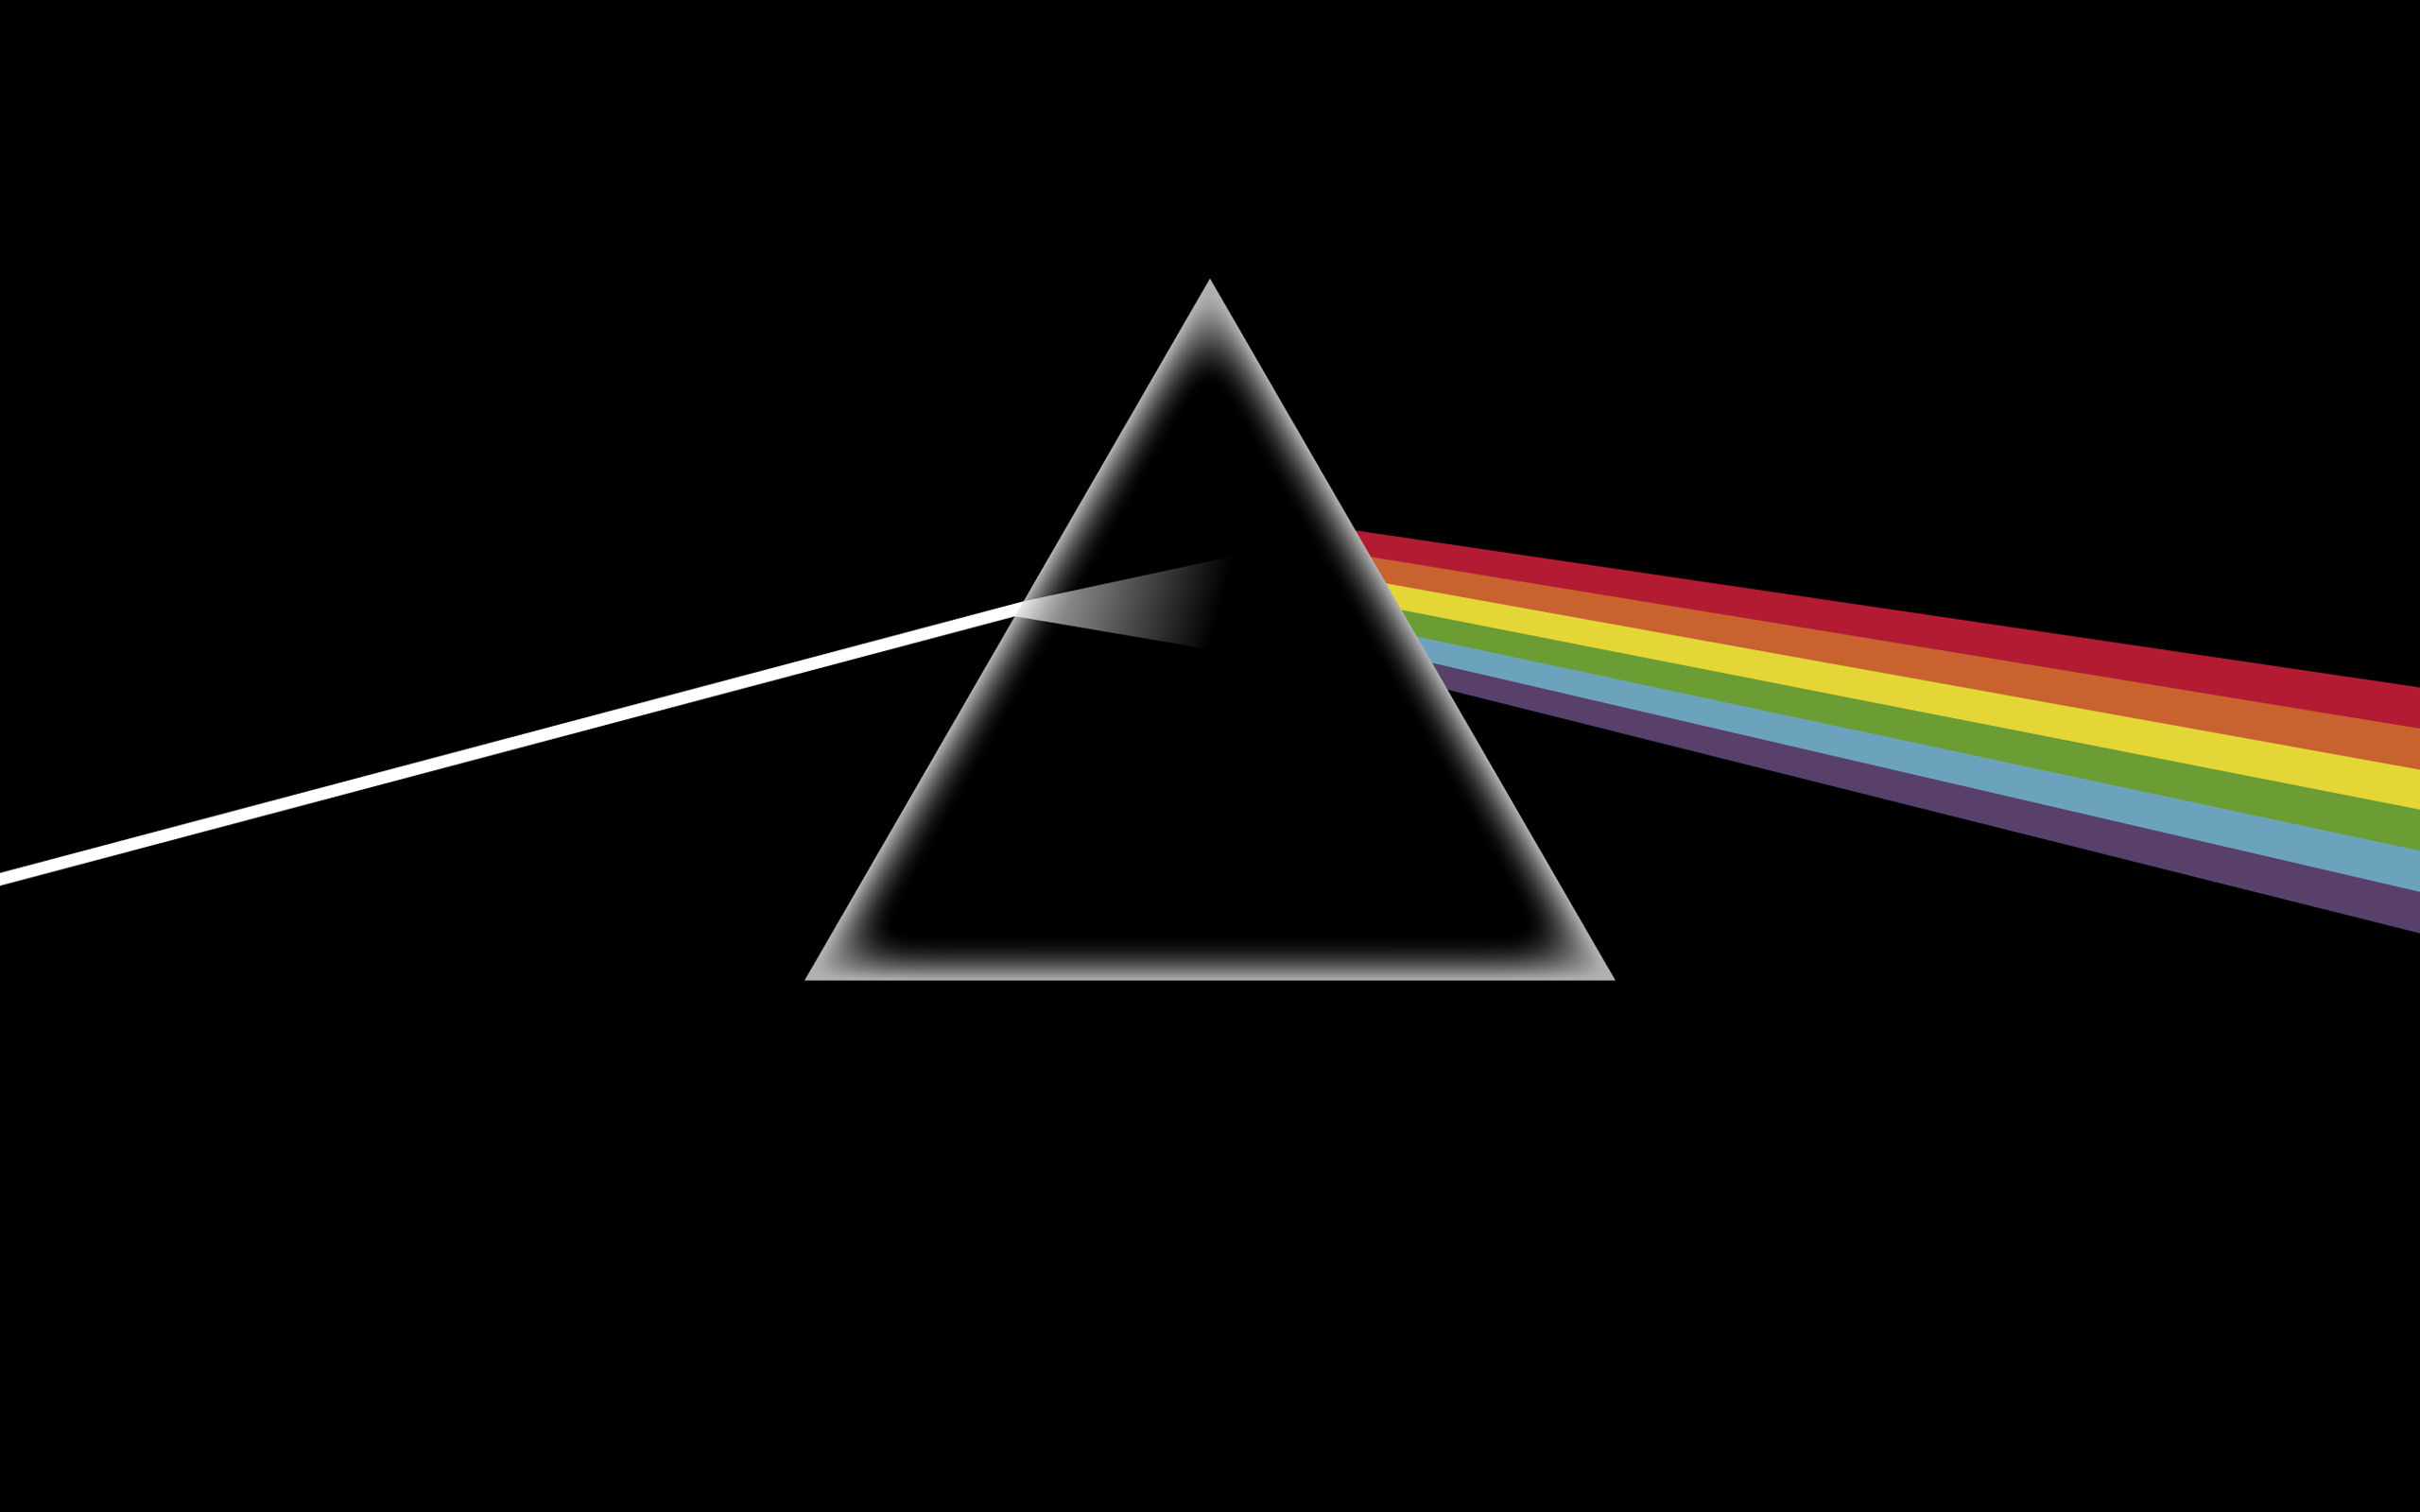 Dark Side of the Moon Wallpaper Pack by alphasnail 2560x1600